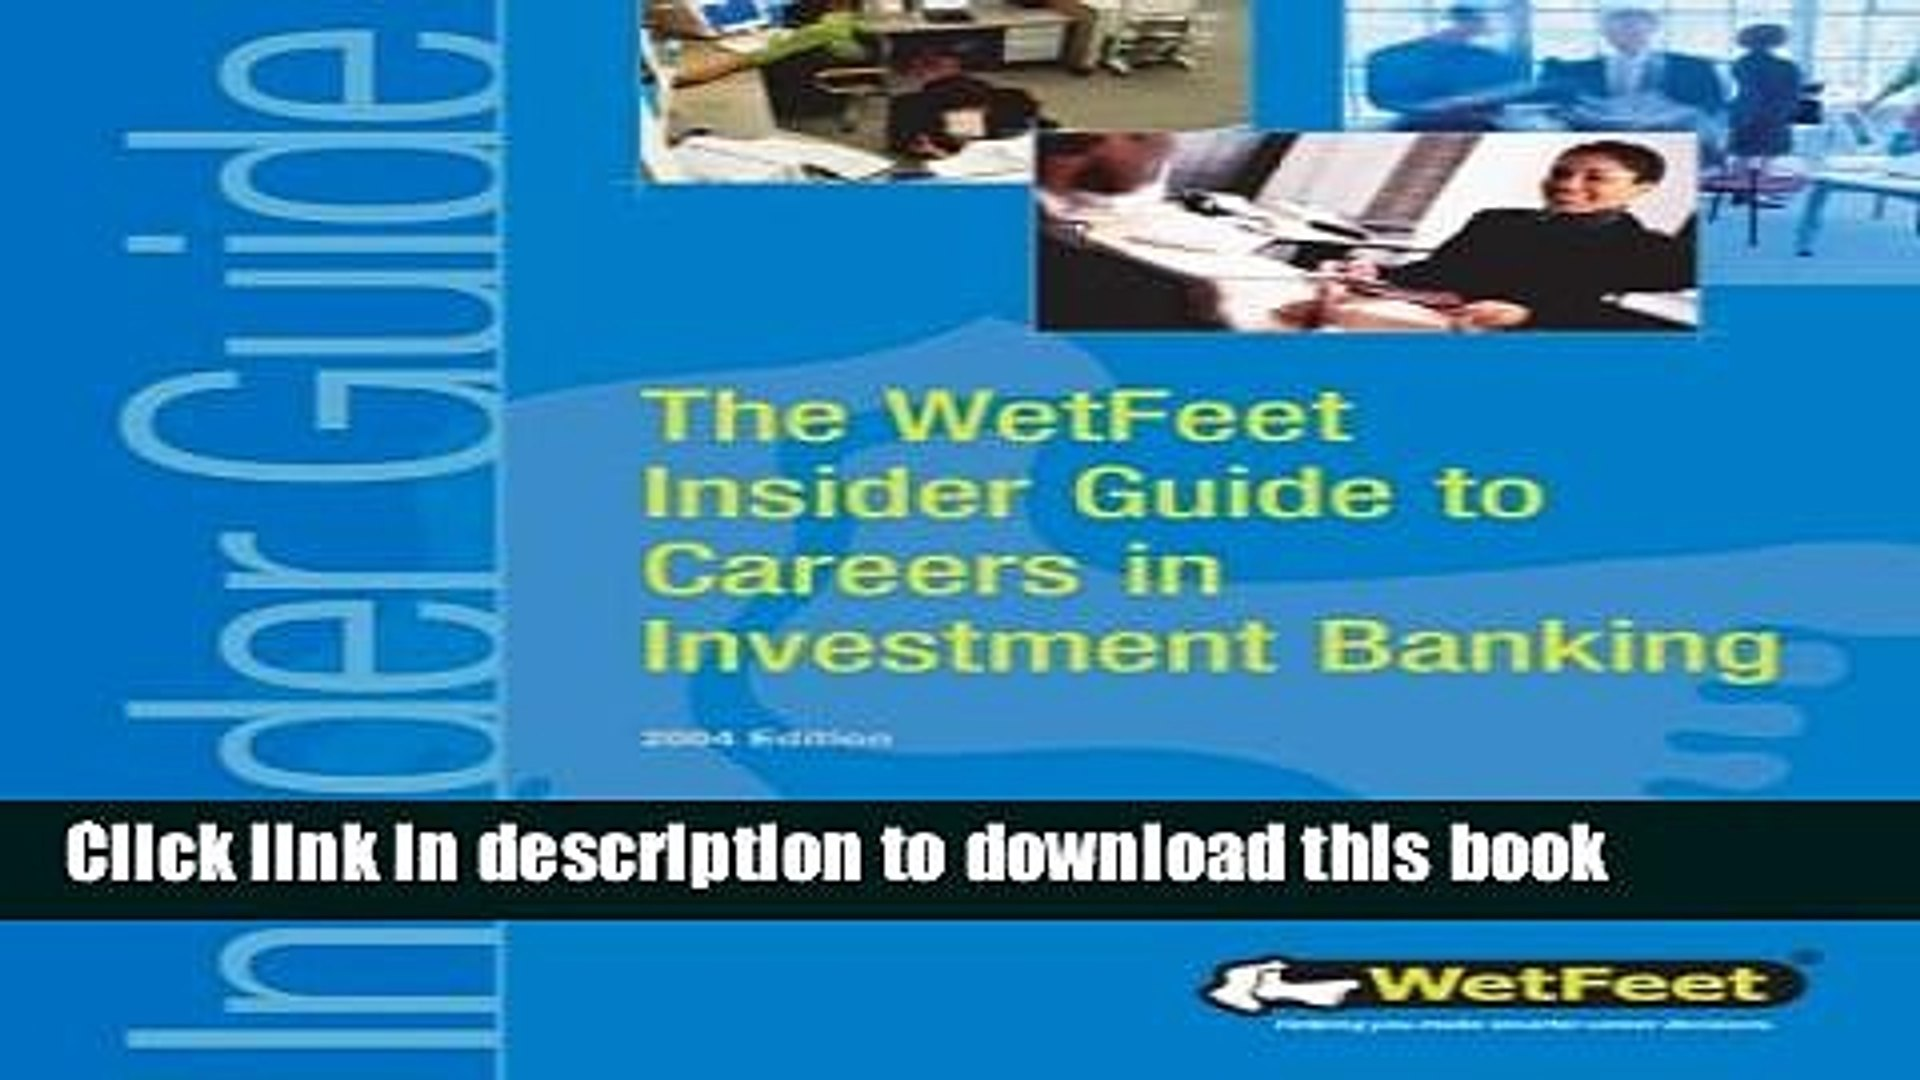 [Popular Books] The Wetfeet Insider Guide to Careers in Investment Banking: 2004 Edition Free Online